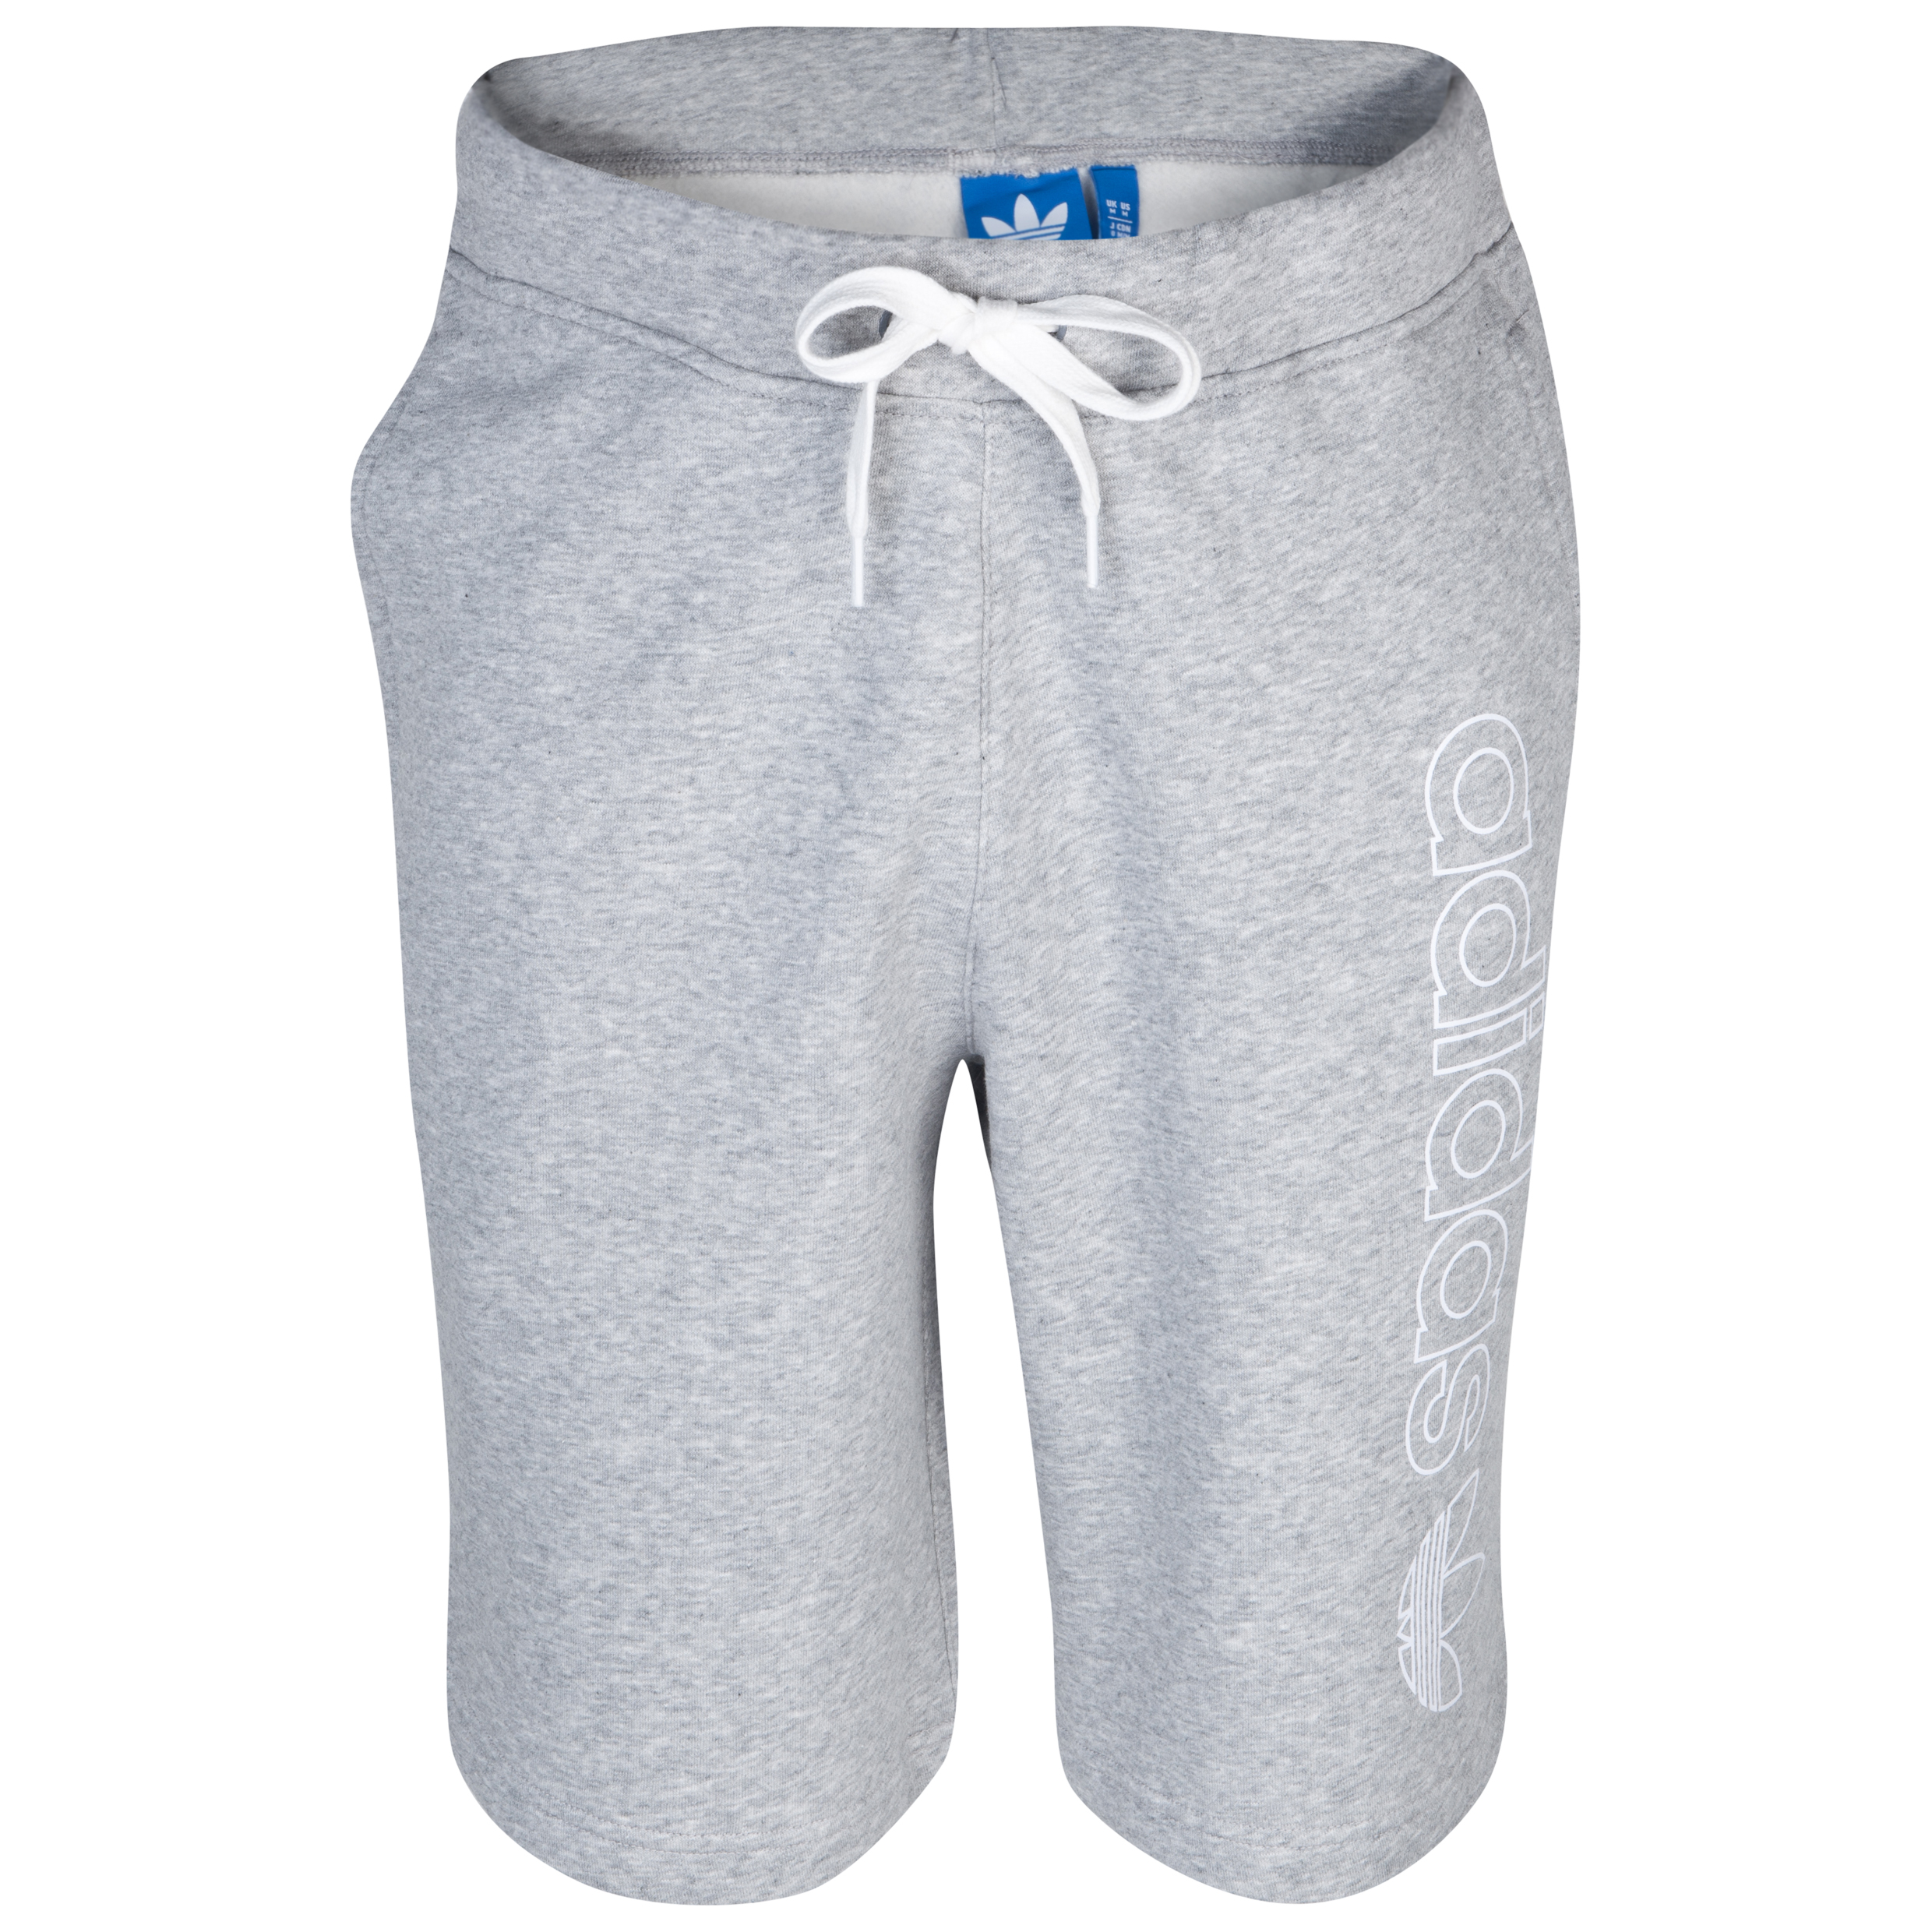 Originals Fleece Logo Short - Medium Grey Heather/White